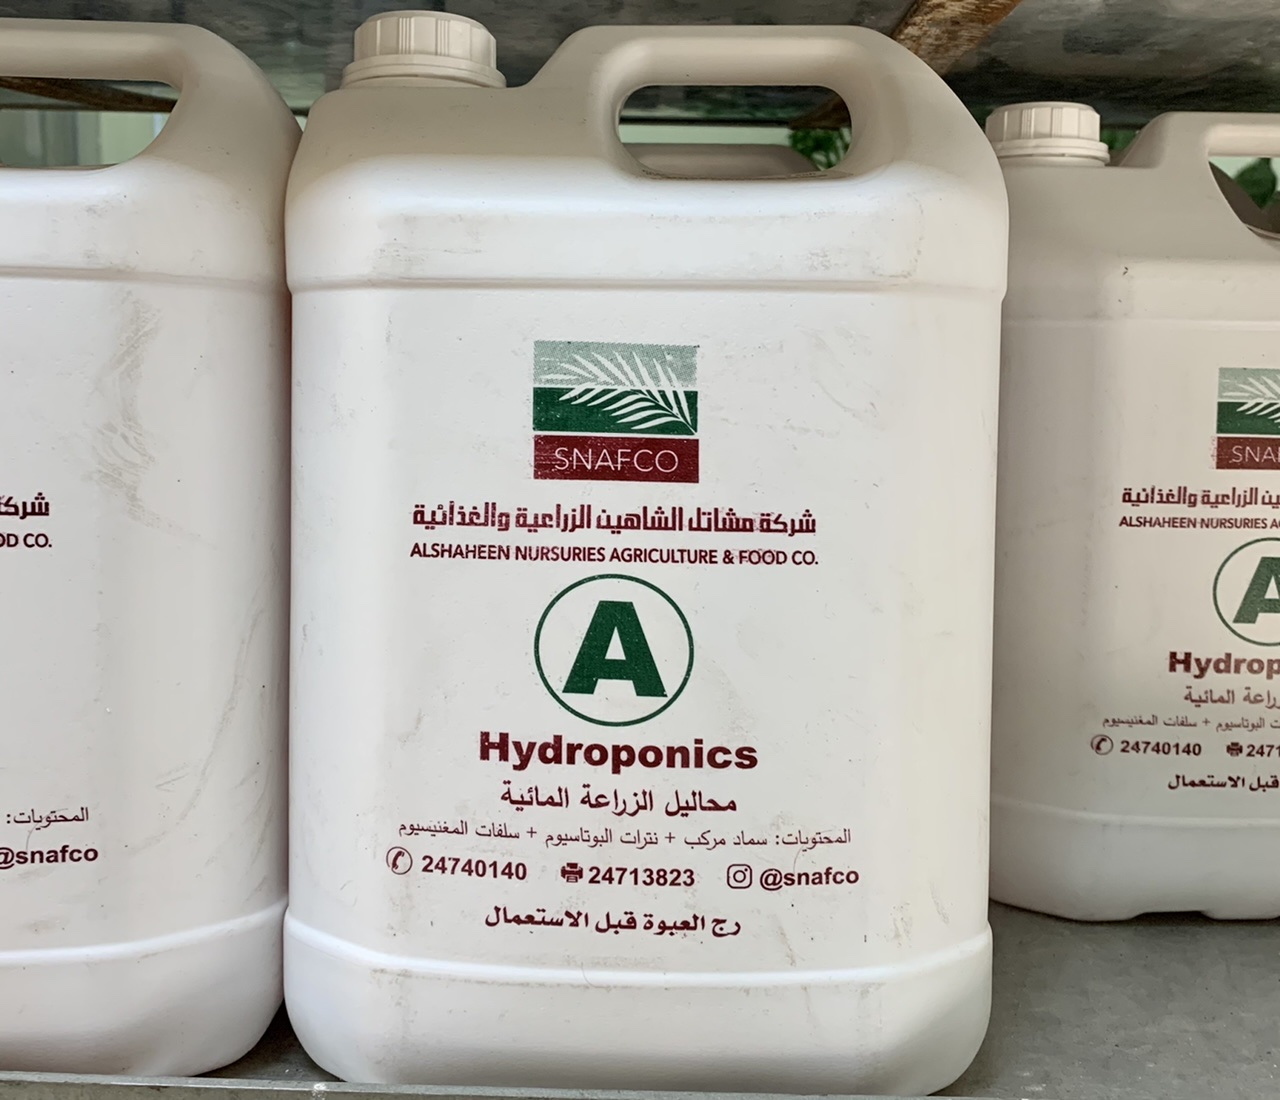 Hydroponic A 5-ltr Soil Fertilizer Pesticide Fertilizers